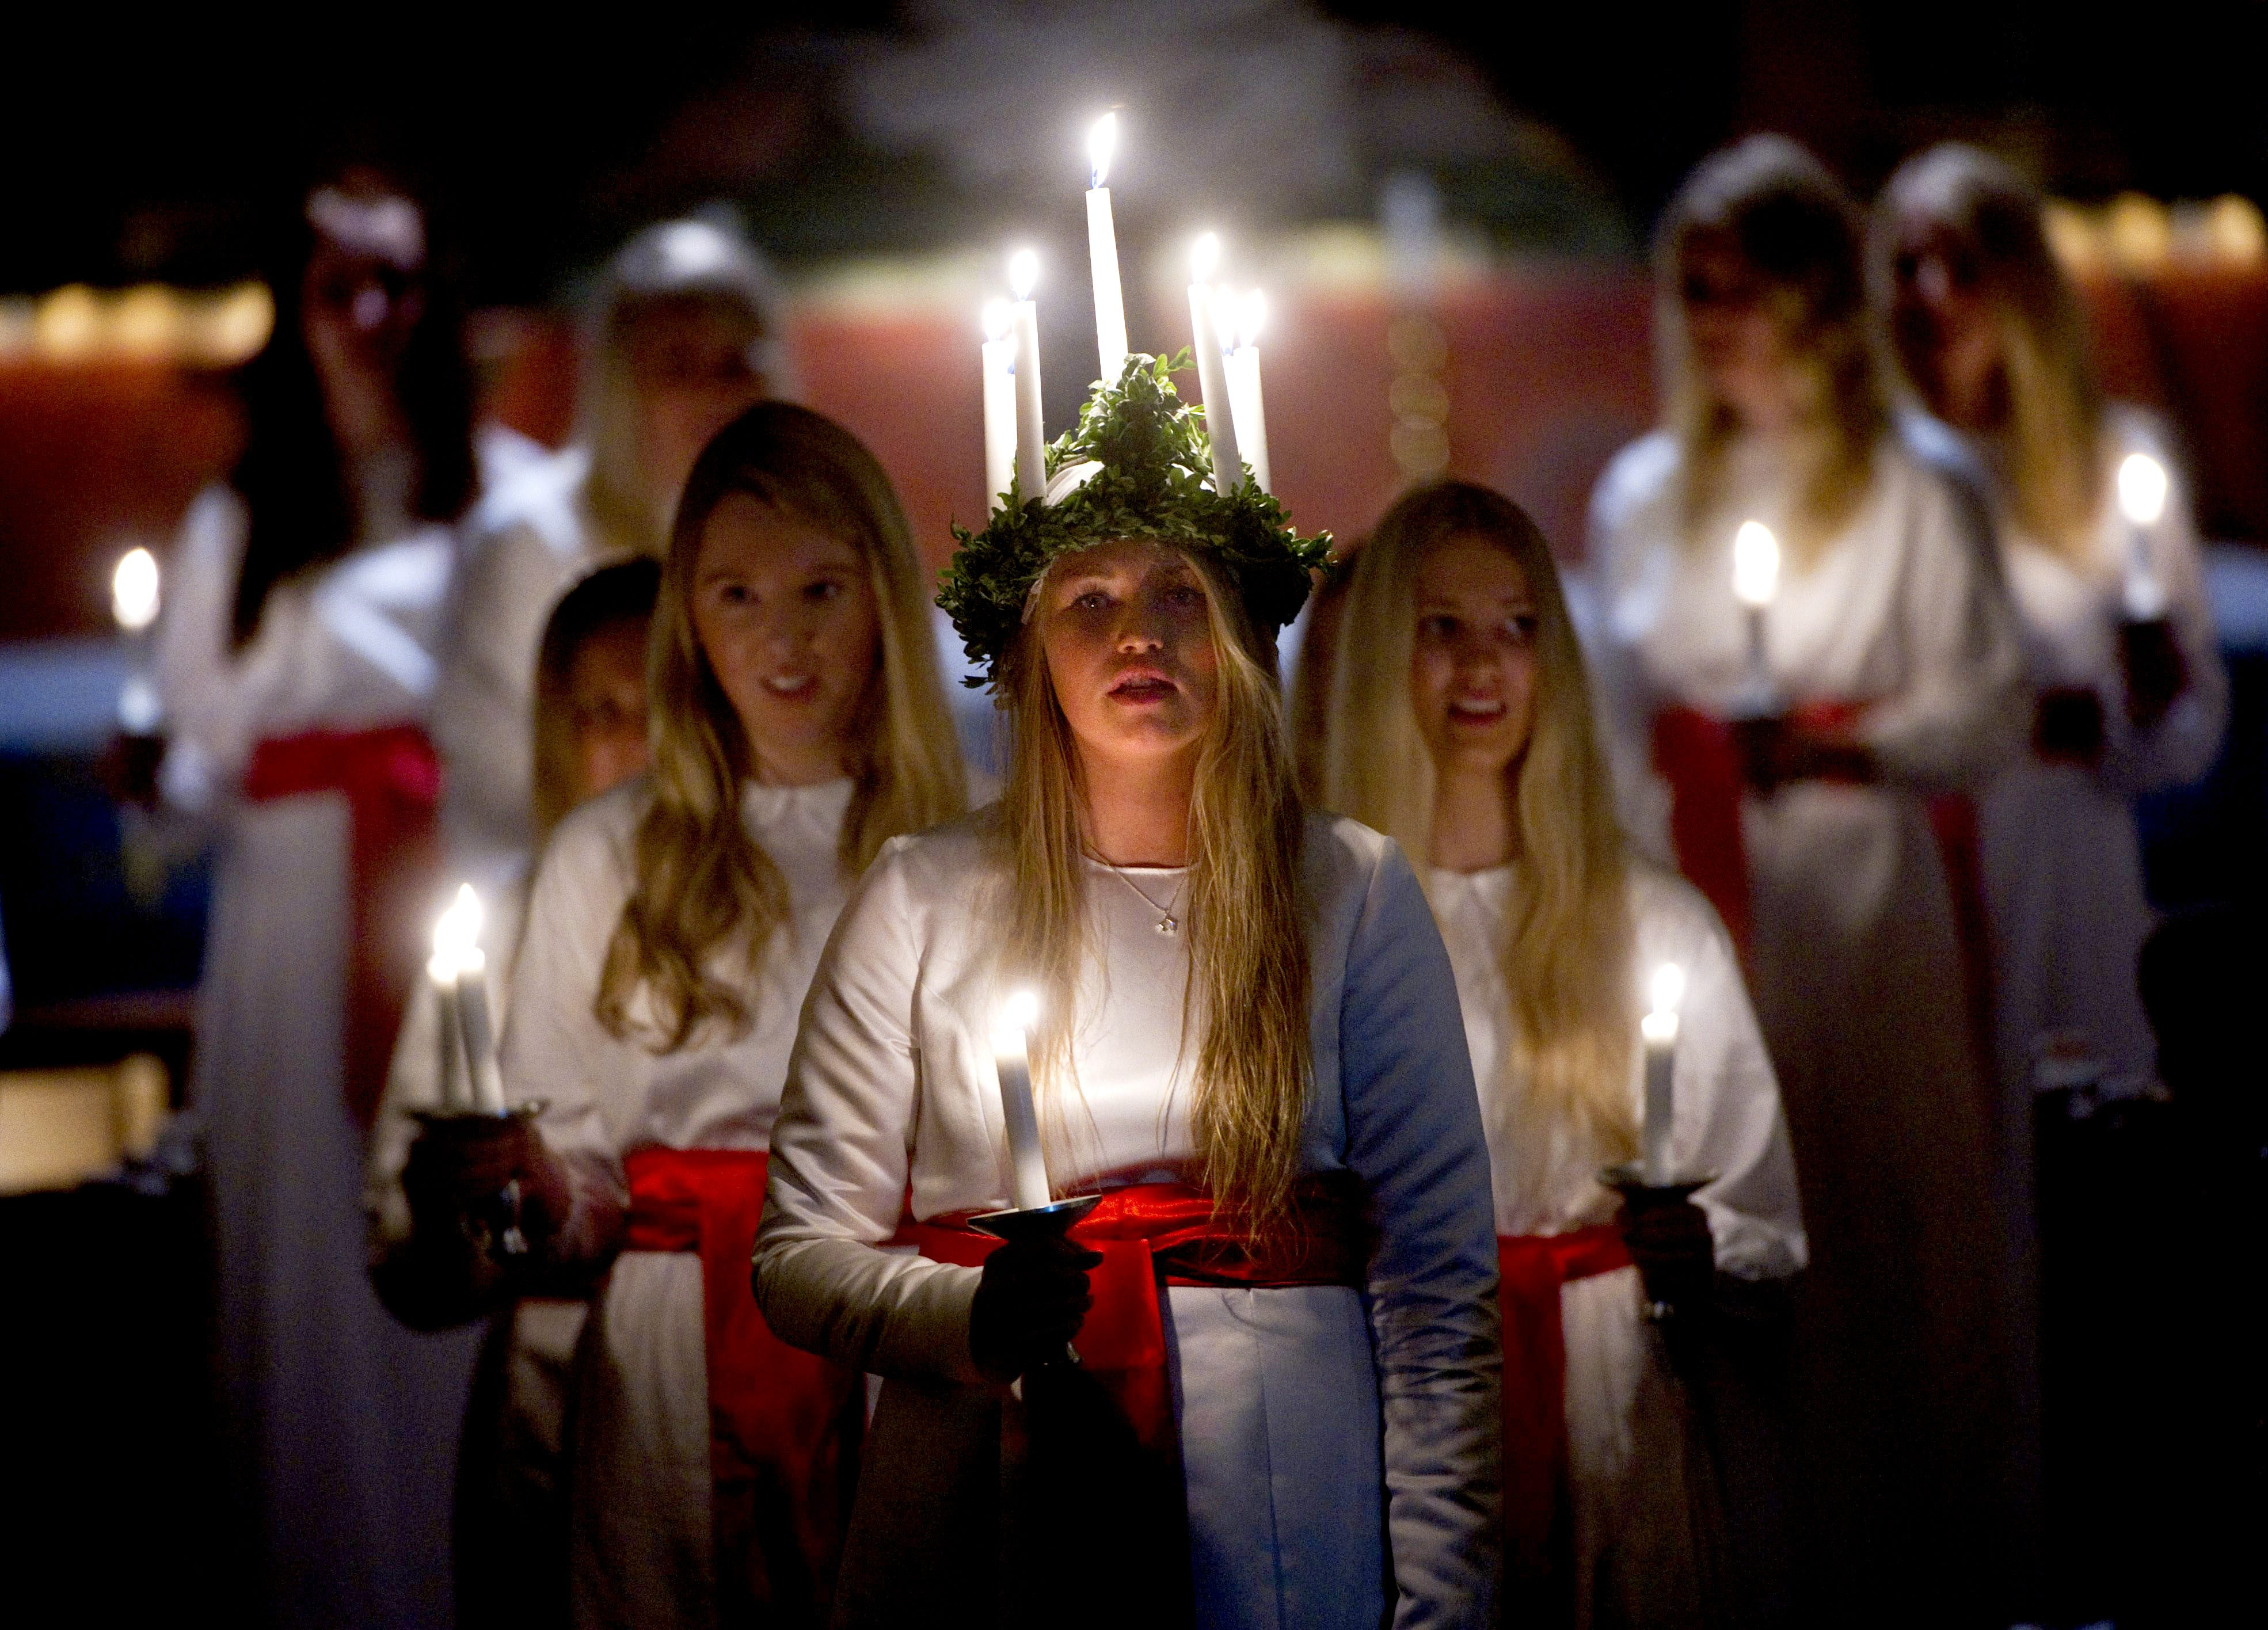 7 fascinating Advent traditions from star-shaped pinatas to candle crowns